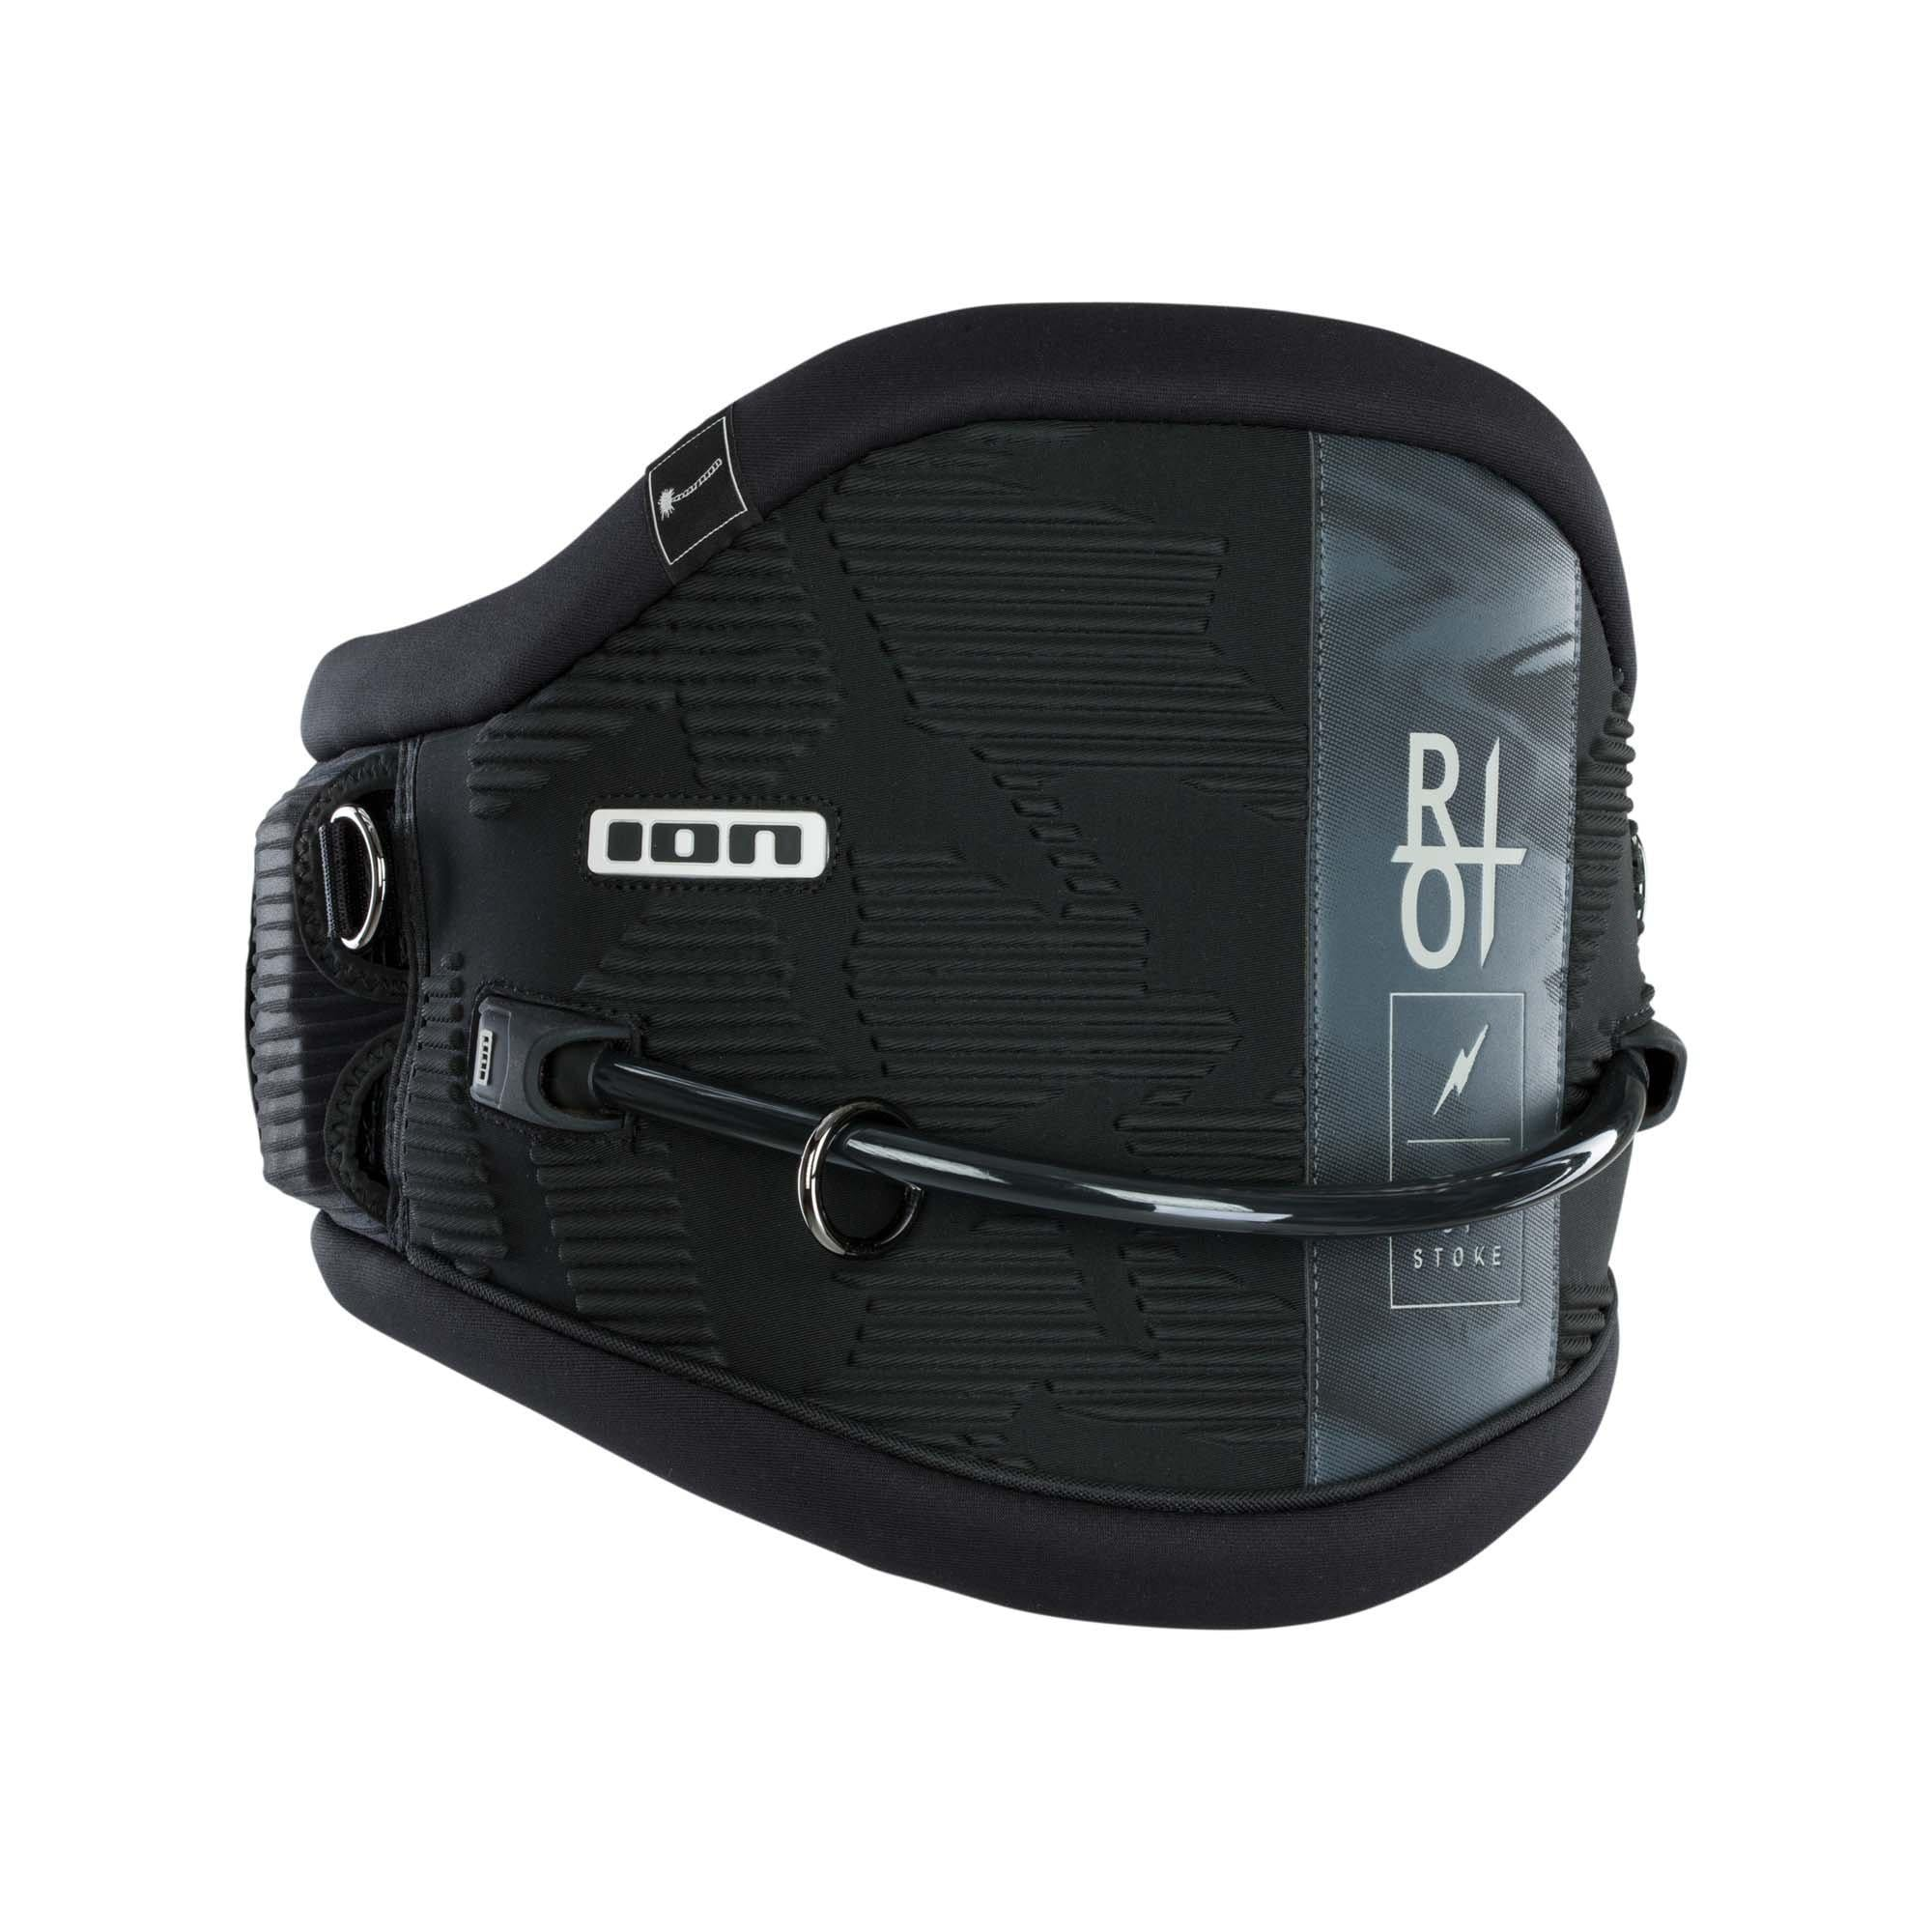 2020 Ion Riot 9 Kiteboard Waist Harness-Big Winds